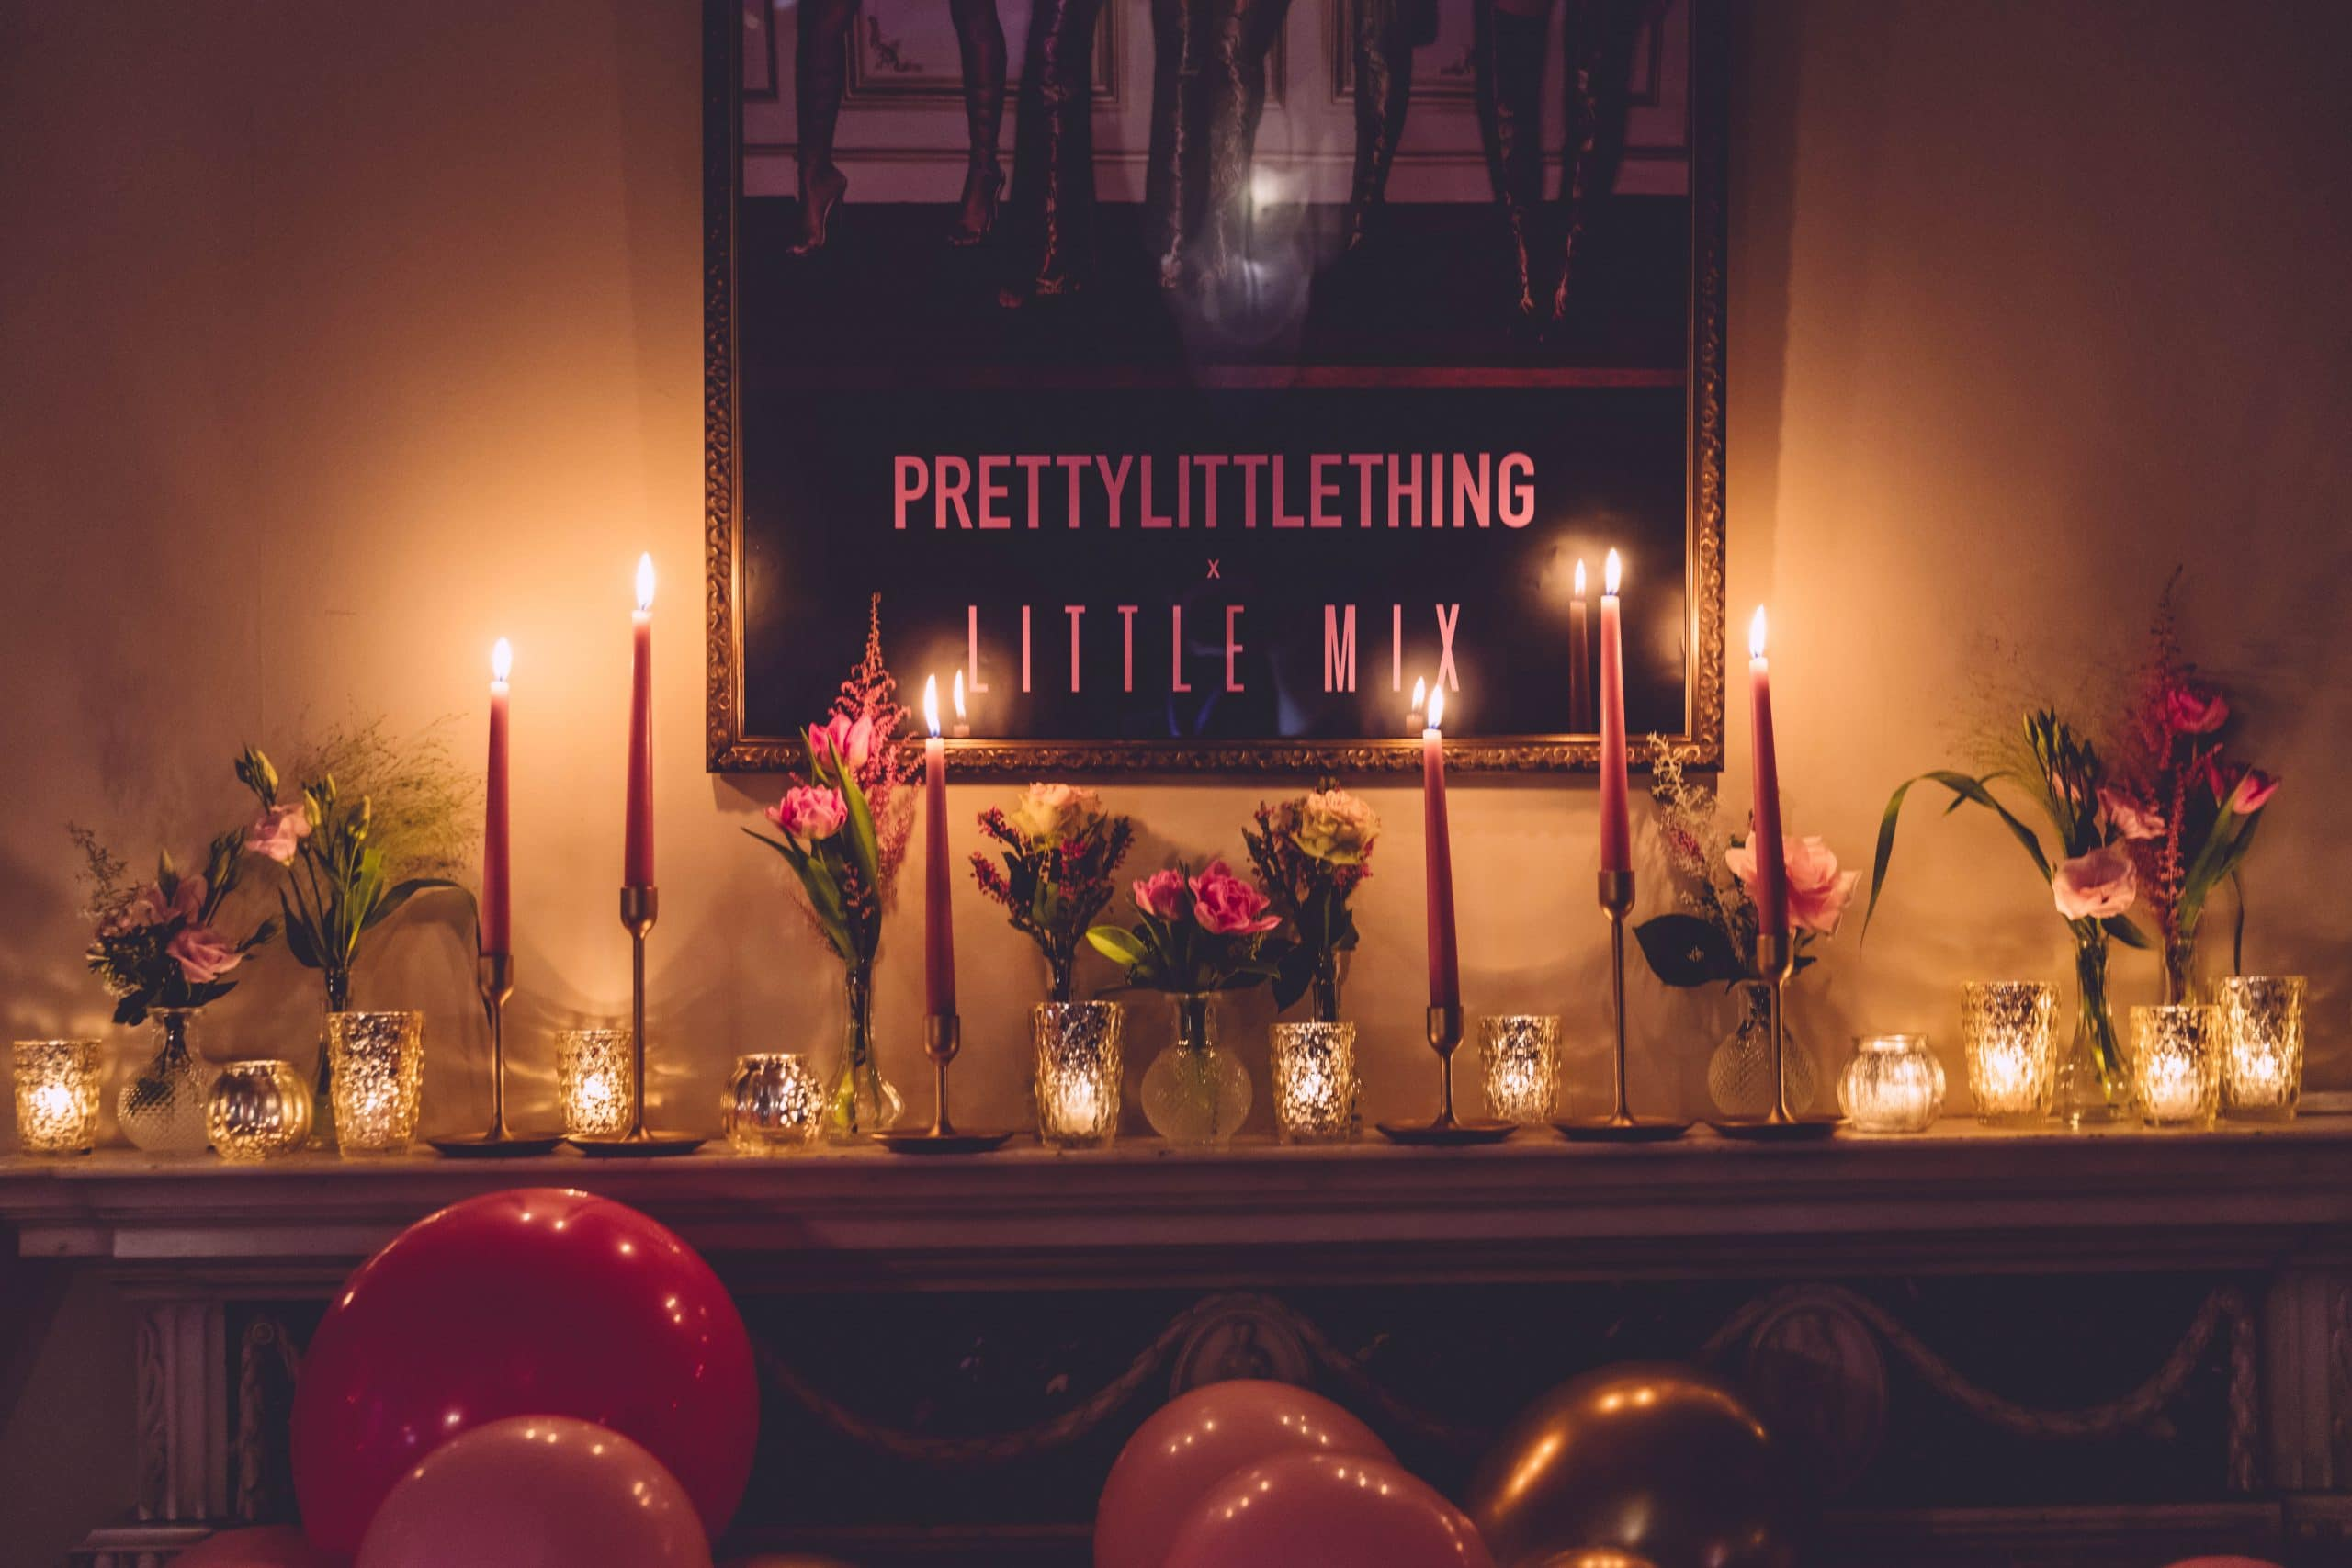 Little Mix & Pretty Little Thing launch party